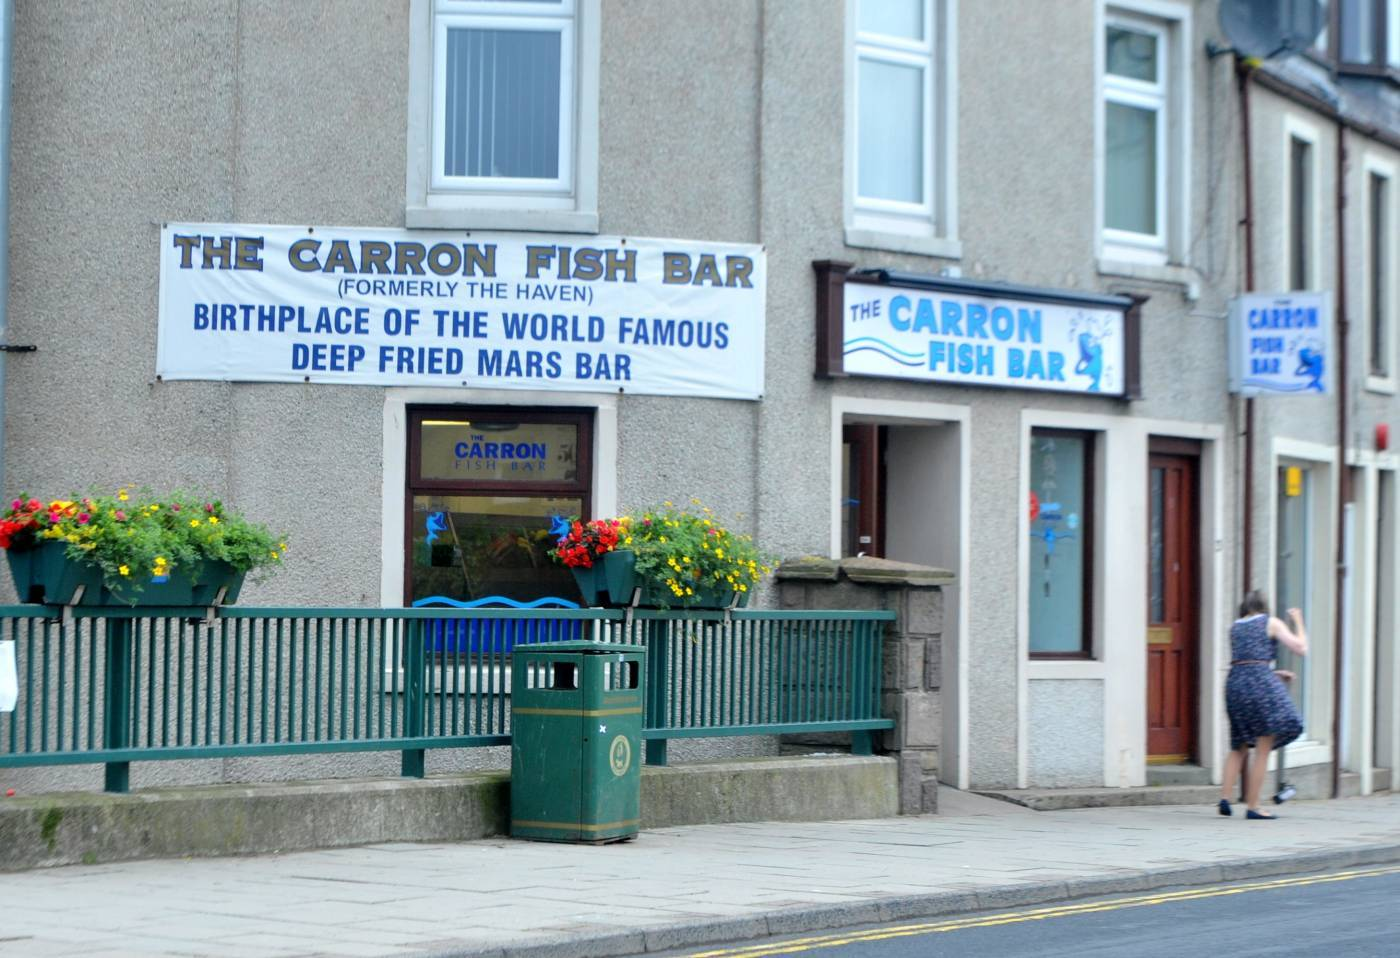 The Carron Fish Bar in Stonehaven has been asked to take down their sign advertising  fried Mars bars.